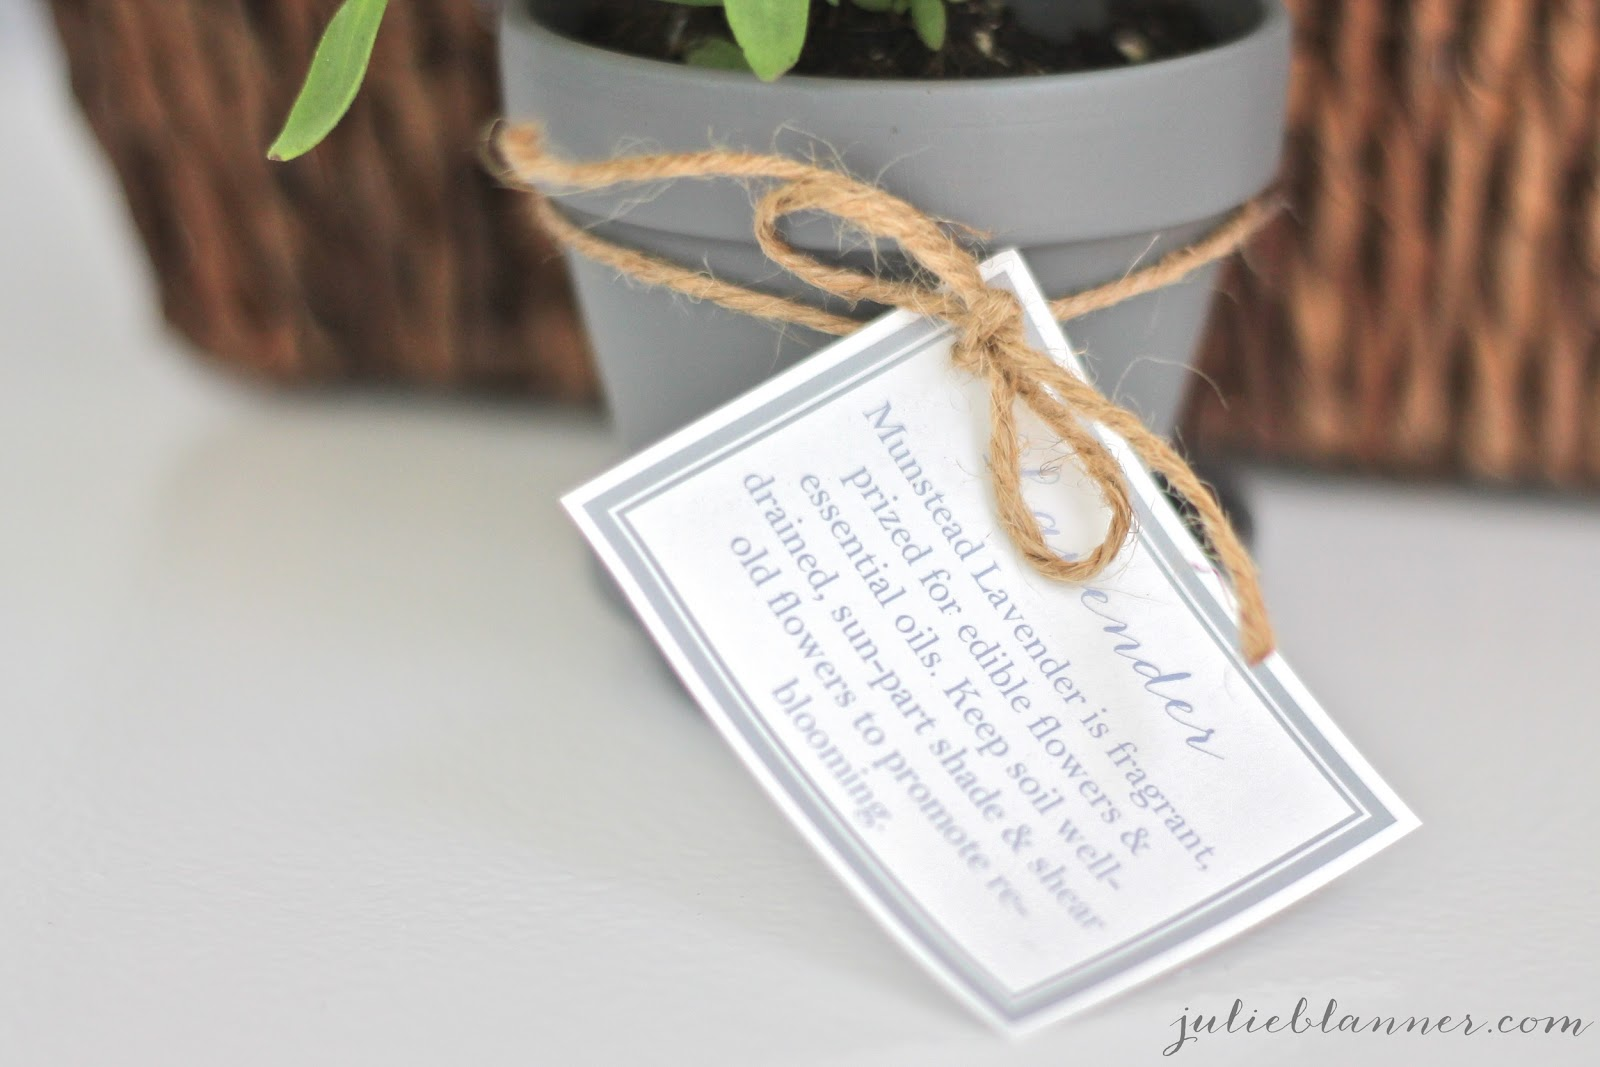 Homemade Housewarming Gift Ideas Homemade Housewarming Gift Julie Blanner